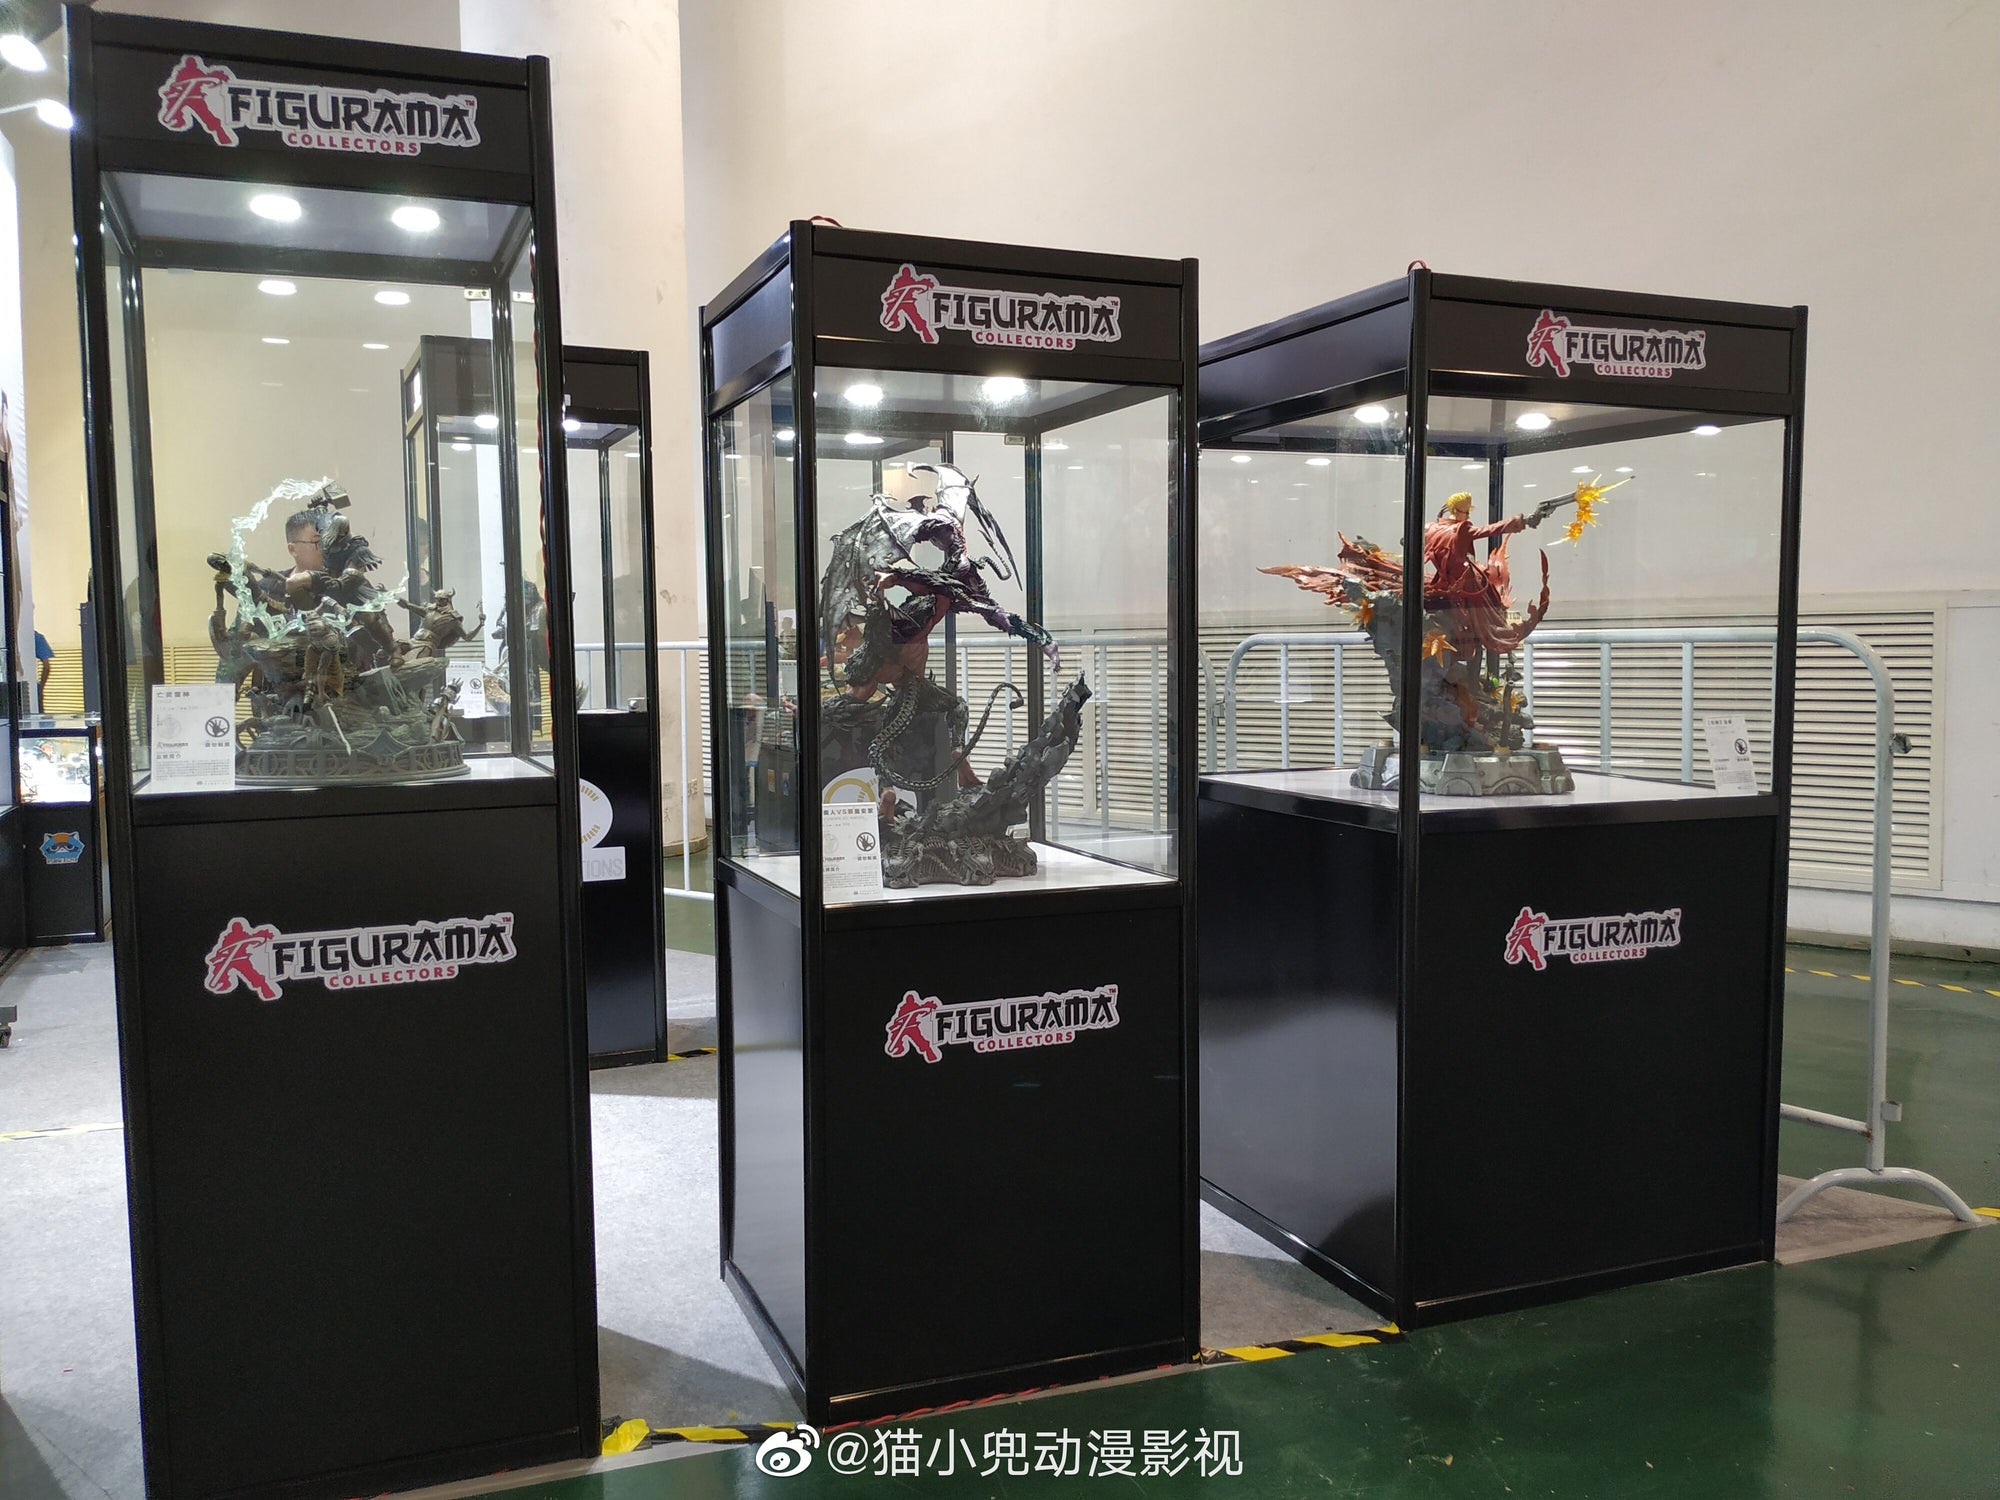 FIGURAMA COLLECTORS DRAWS CROWDS AT THE CHINA INTERNATIONAL CARTOON AND ANIME FESTIVAL